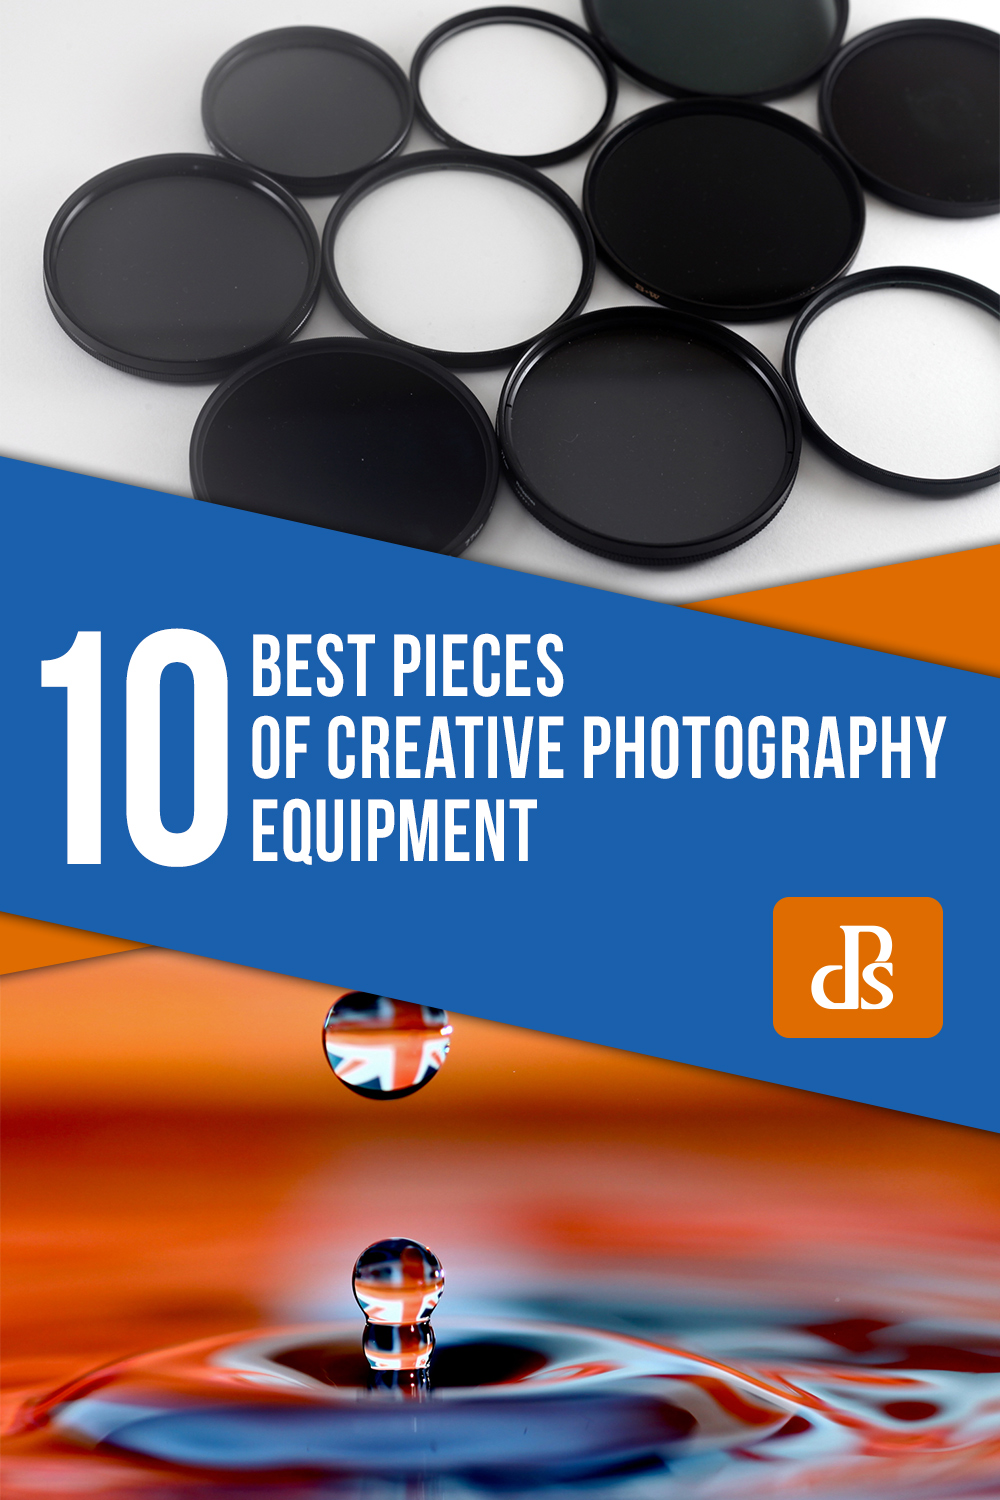 10 best pieces of creative photography equipment